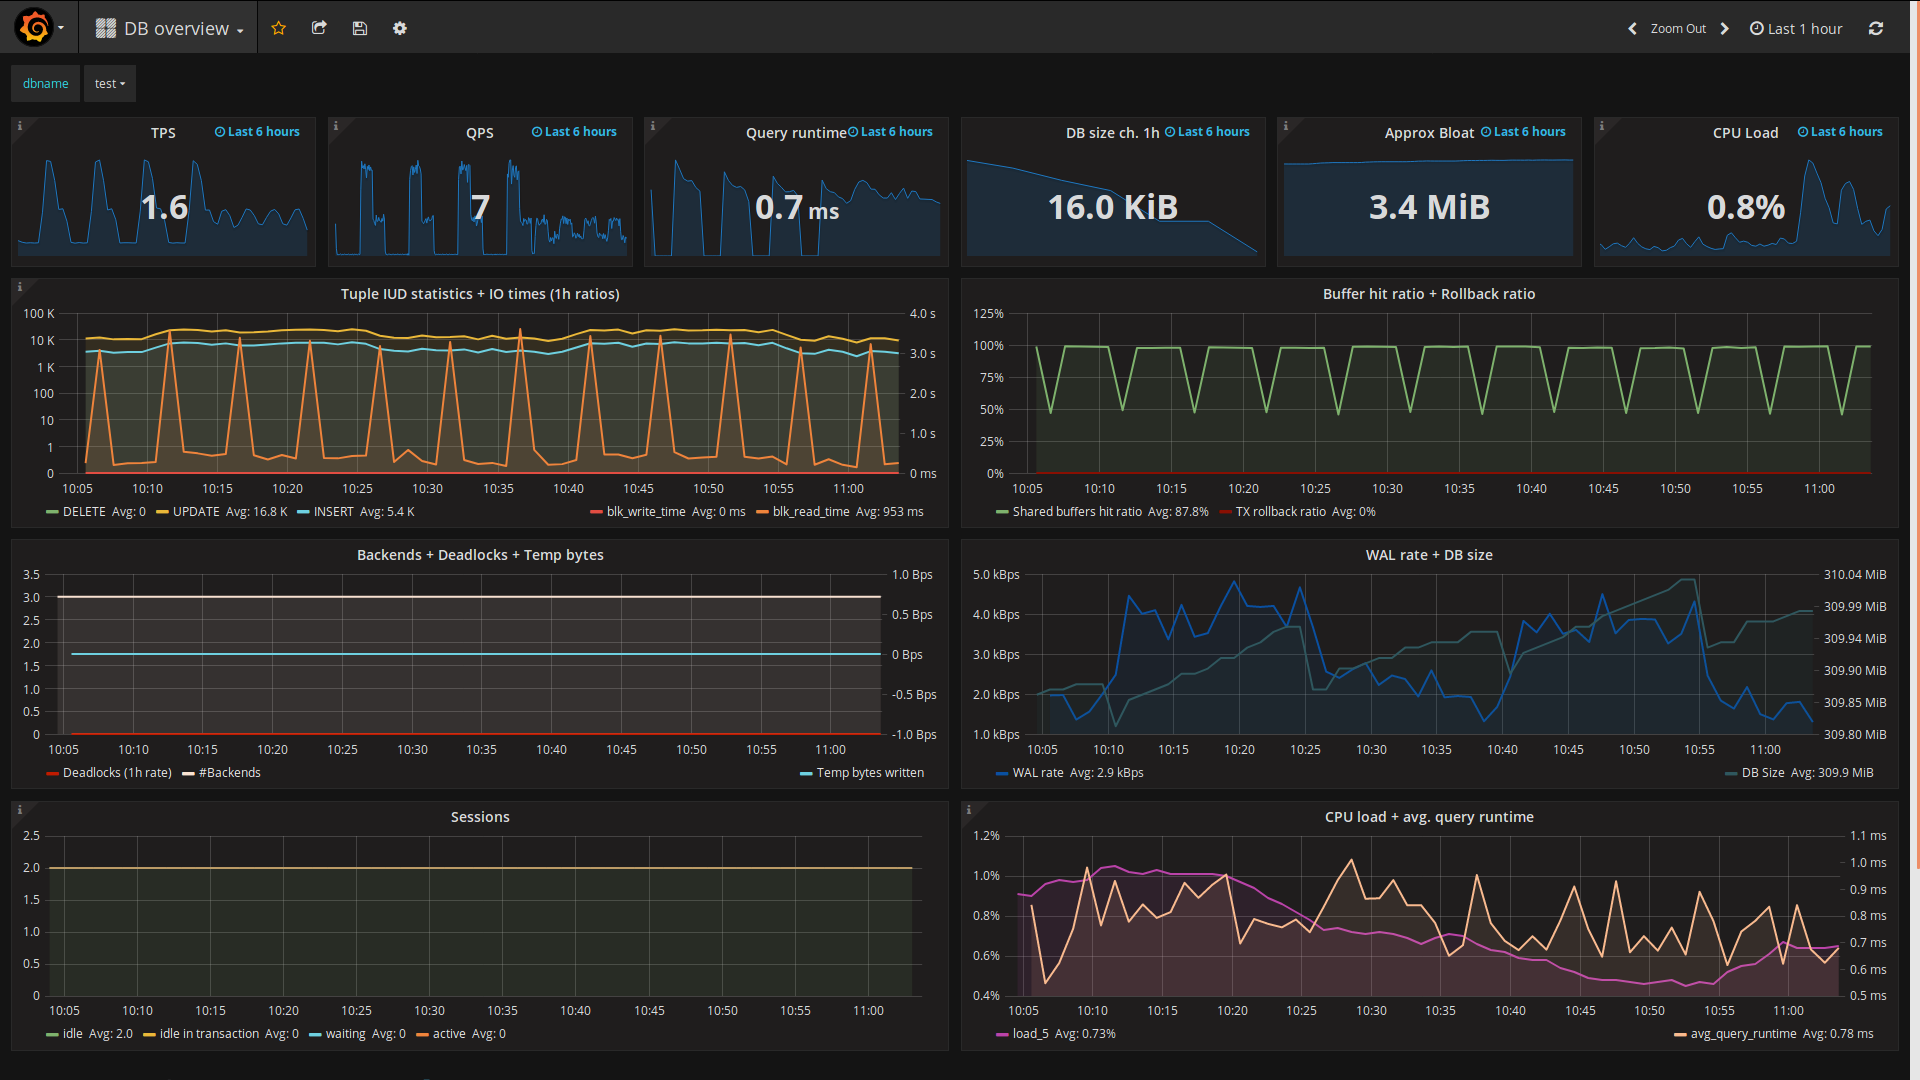 """DB overview"" dashboard"